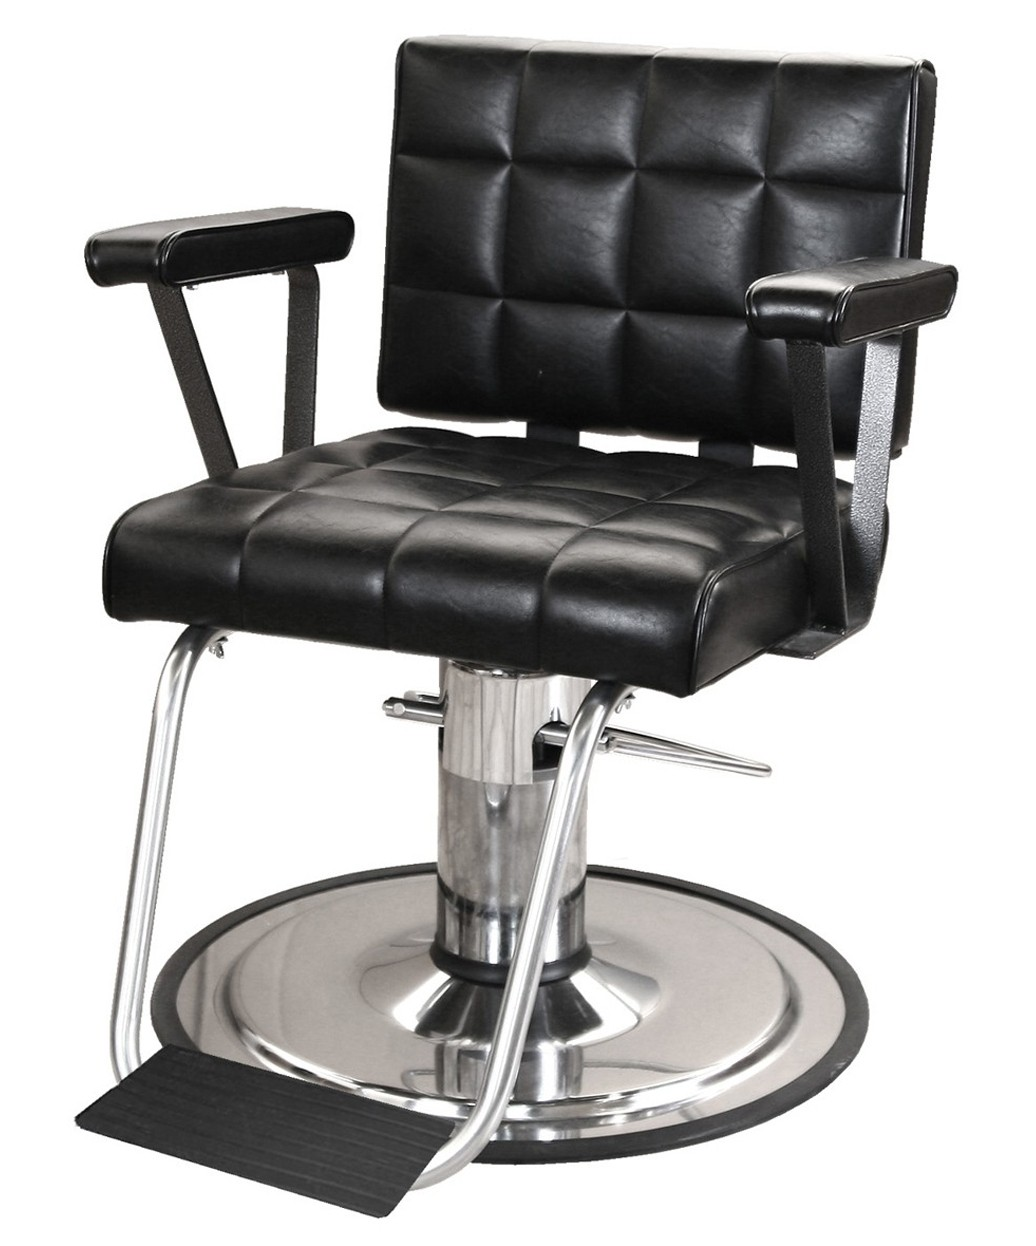 7910 Hackney All Purpose Chair